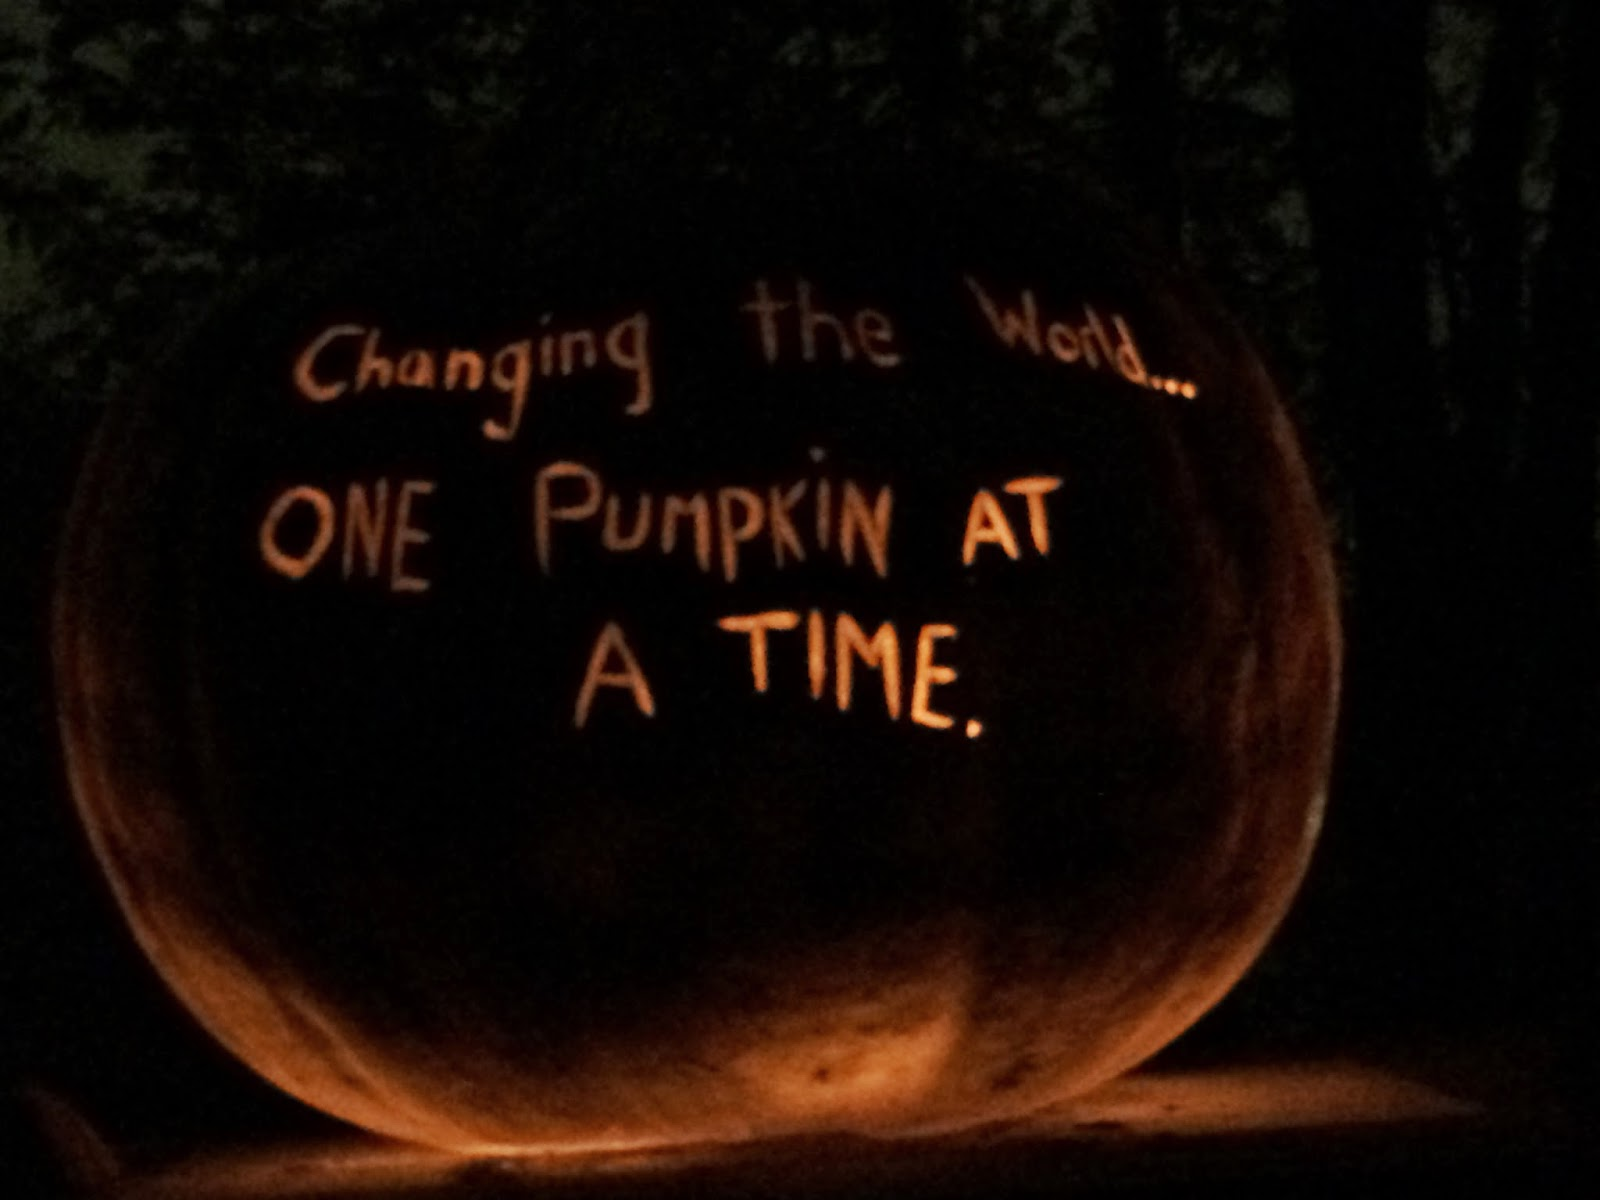 the andrew project: : 2014 jack-o-lantern spectacular @ roger